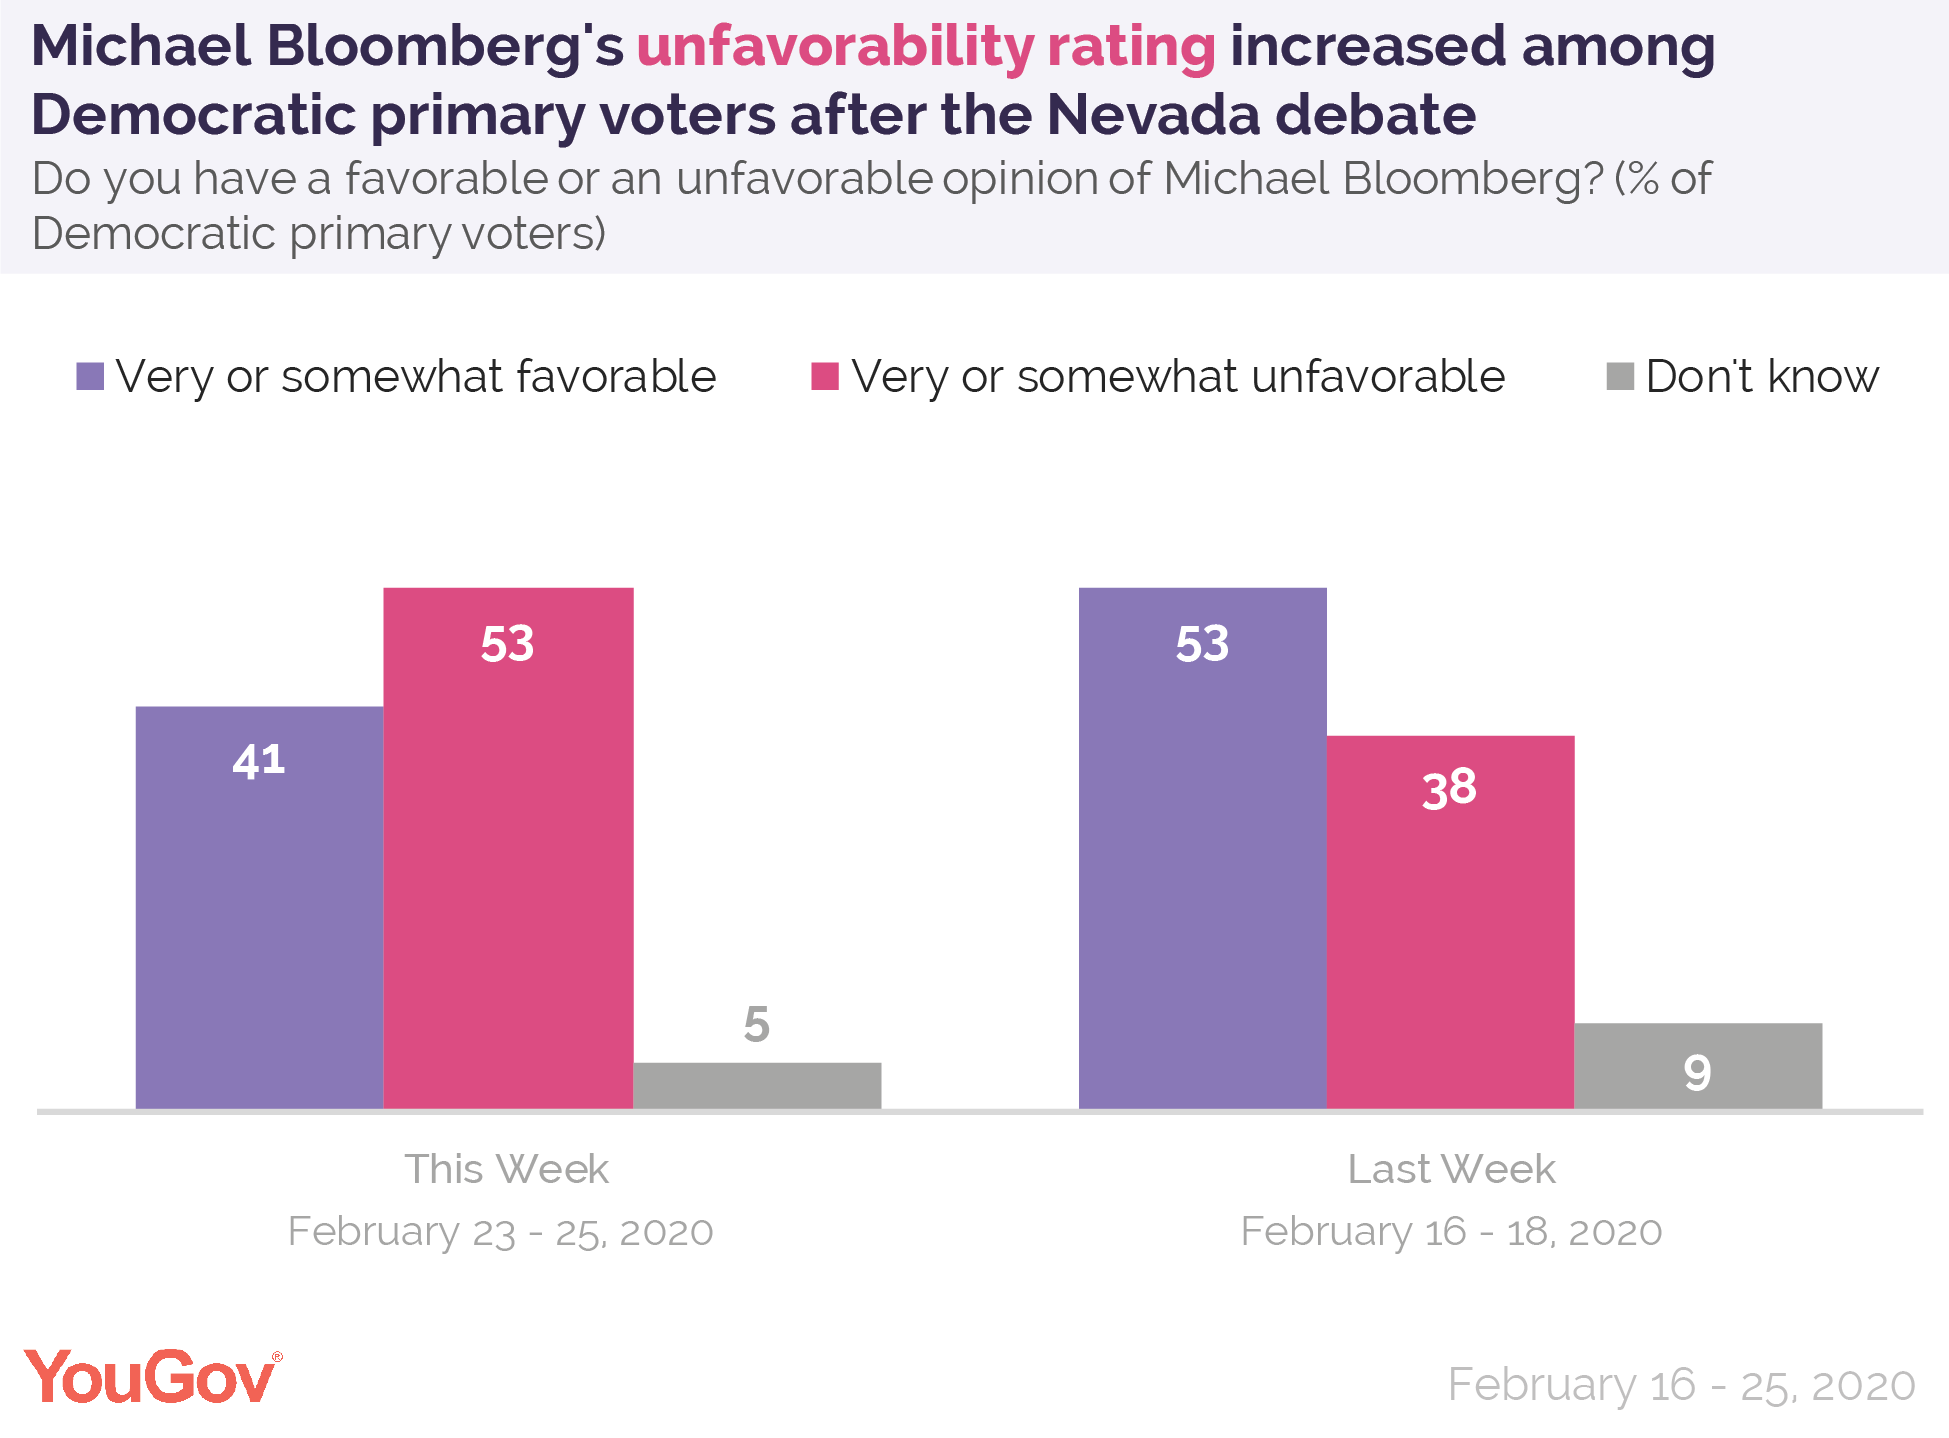 Michael Bloomberg's unfavorability rating increased among Democratic primary voters after the Nevada debate